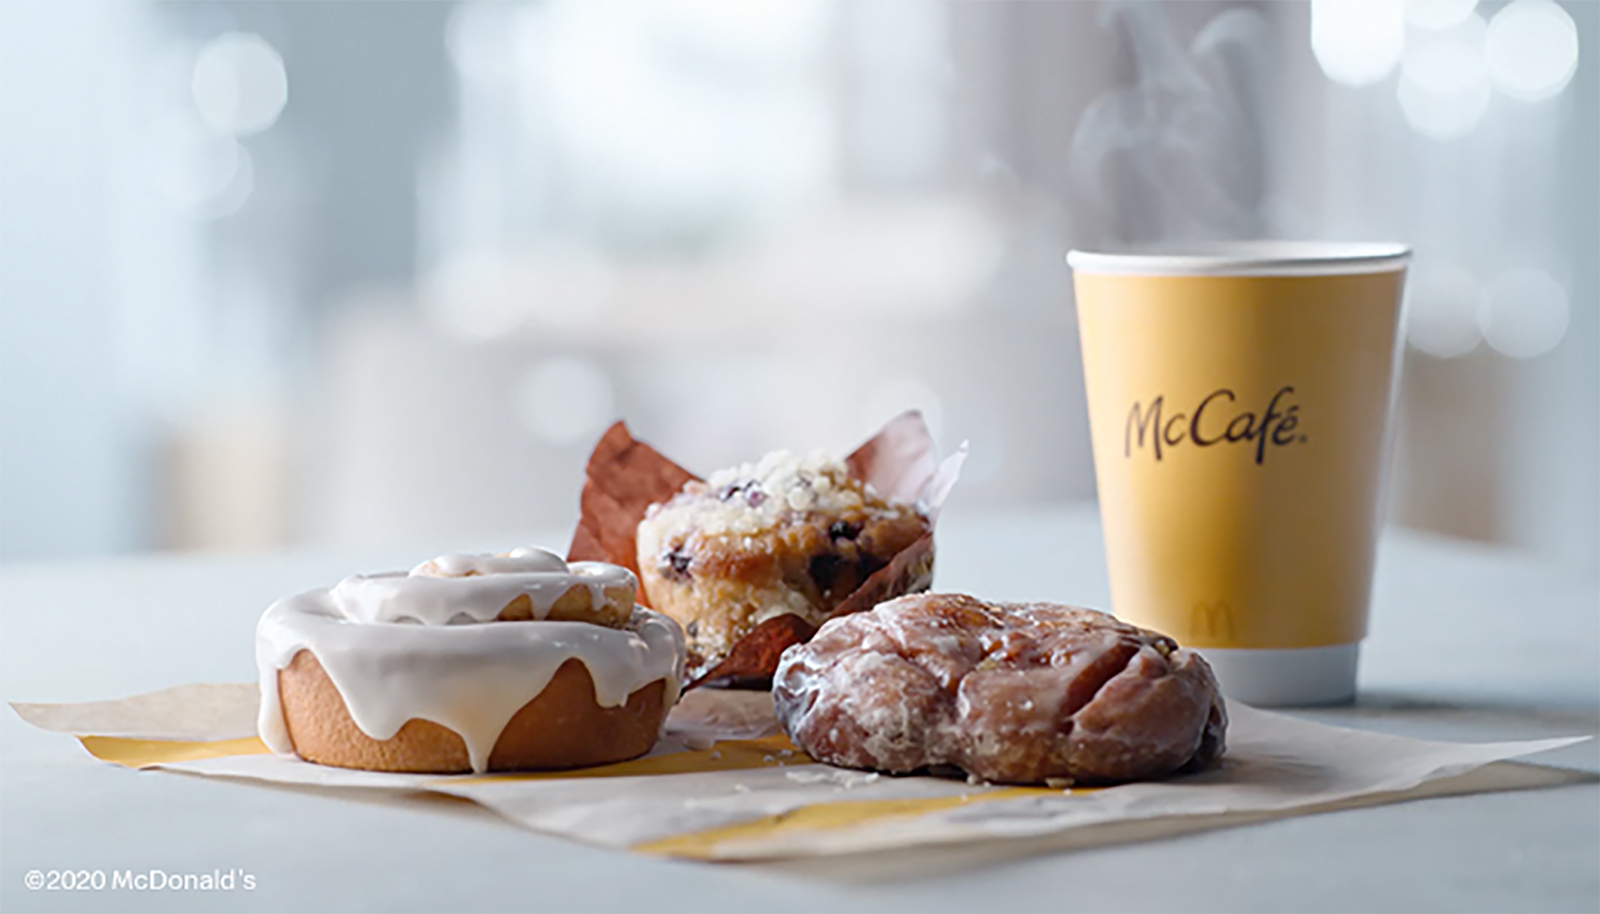 McDonald's new pastries are here. Here's how to get them for free